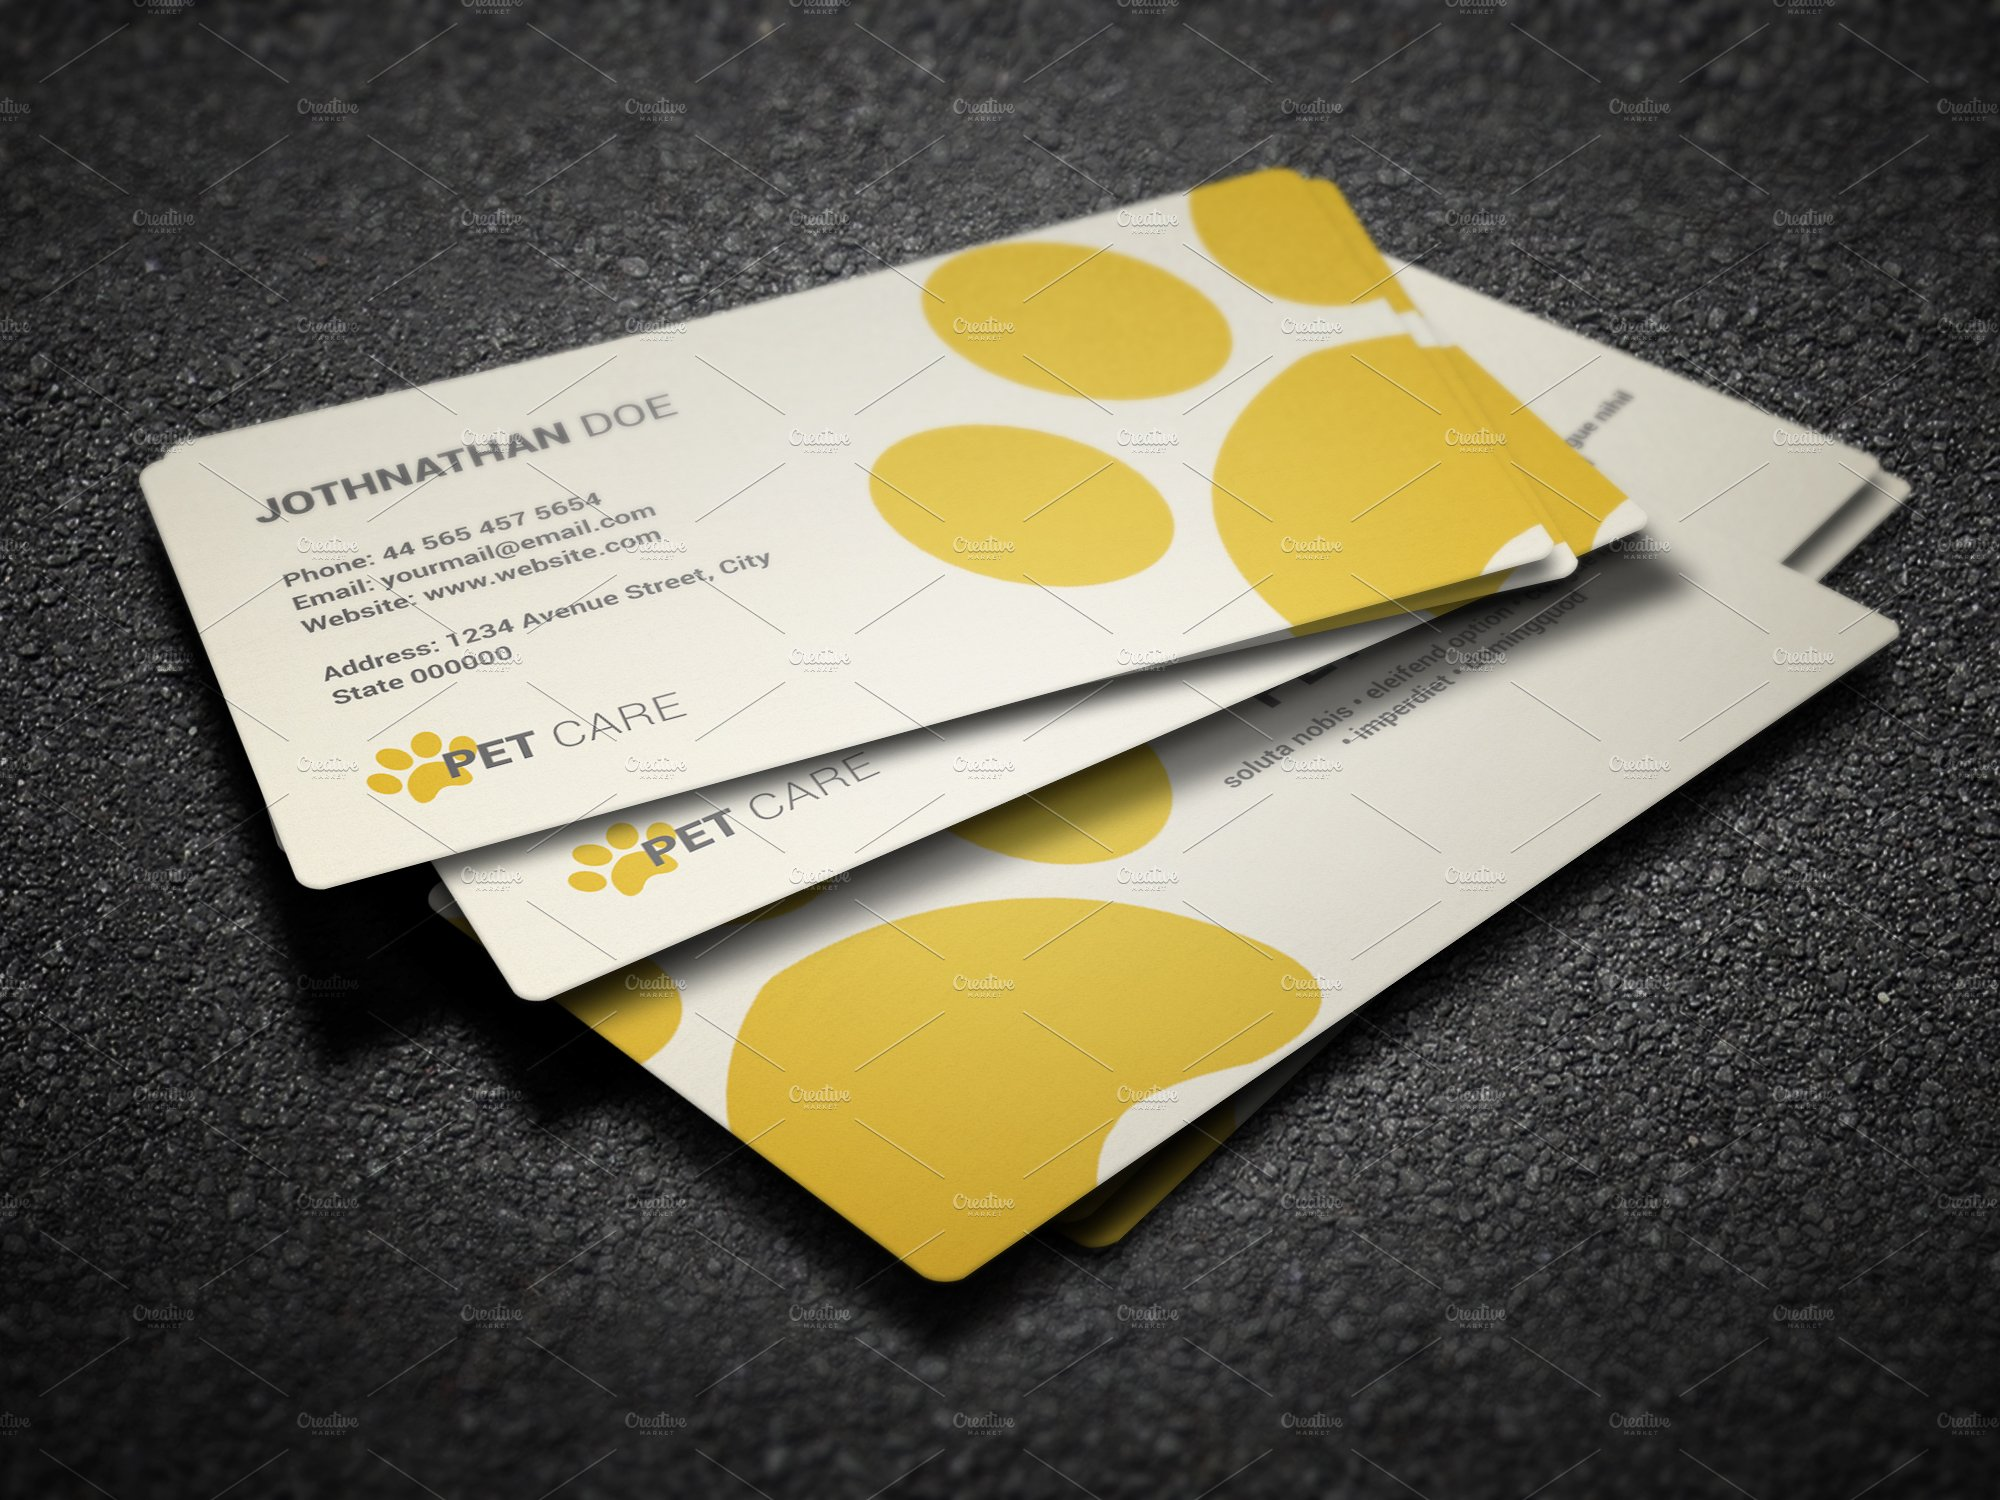 Pet care business card business card templates creative market colourmoves